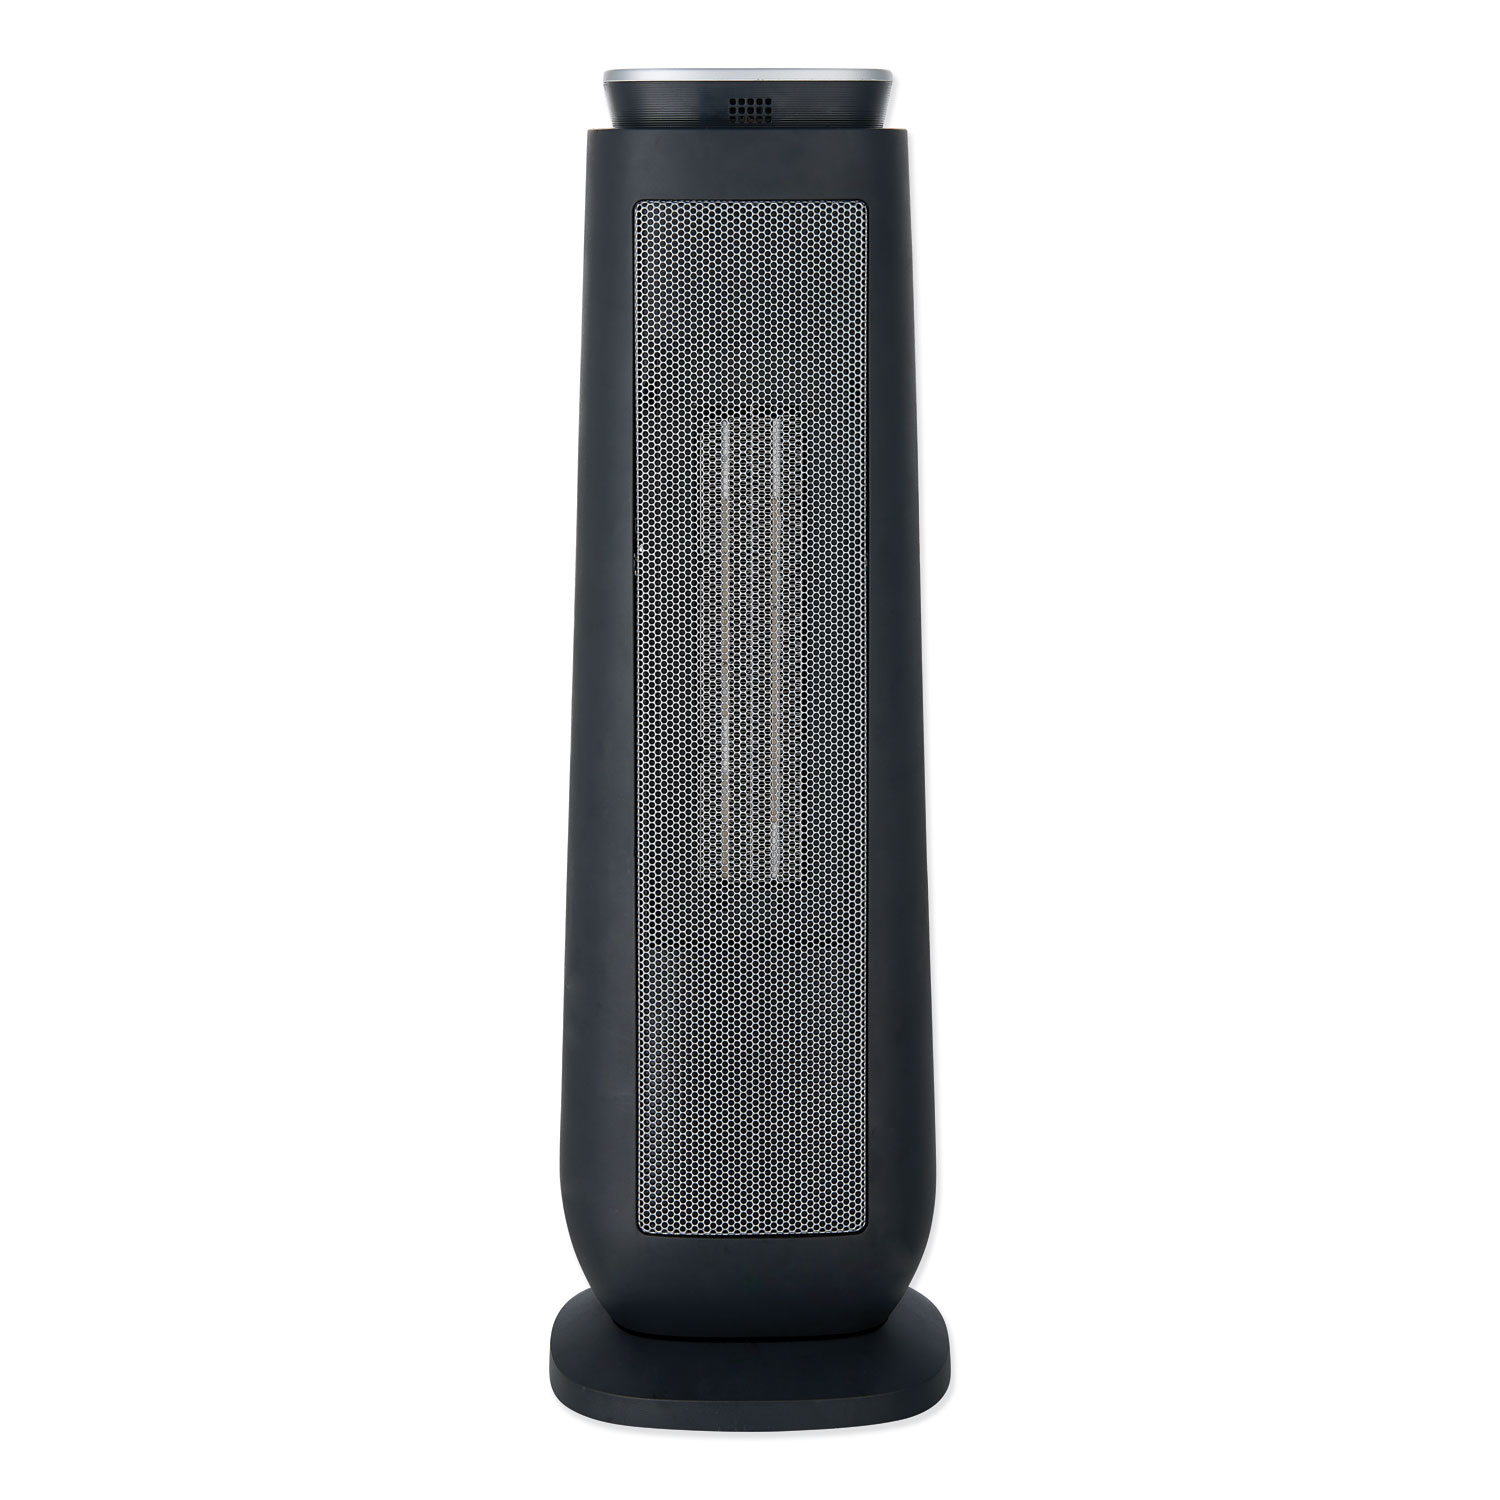 "Ceramic Heater Tower with Remote Control, 7.17"" x 7.17"" x 22.95"", Black"